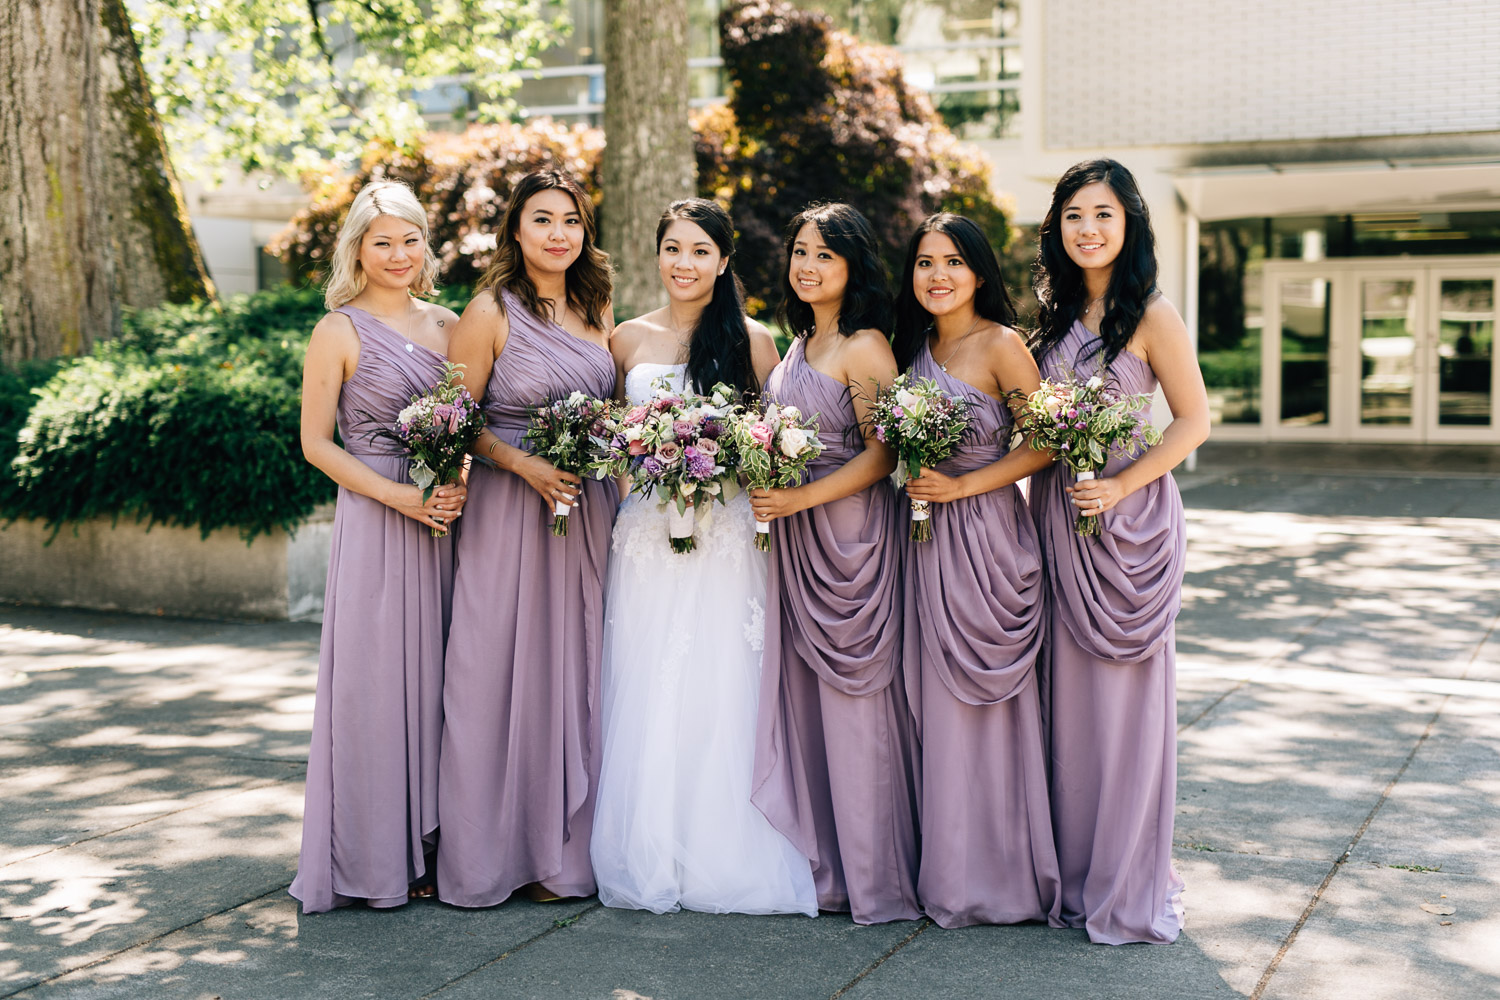 bride and bridesmaids ubc vancouver wedding photography